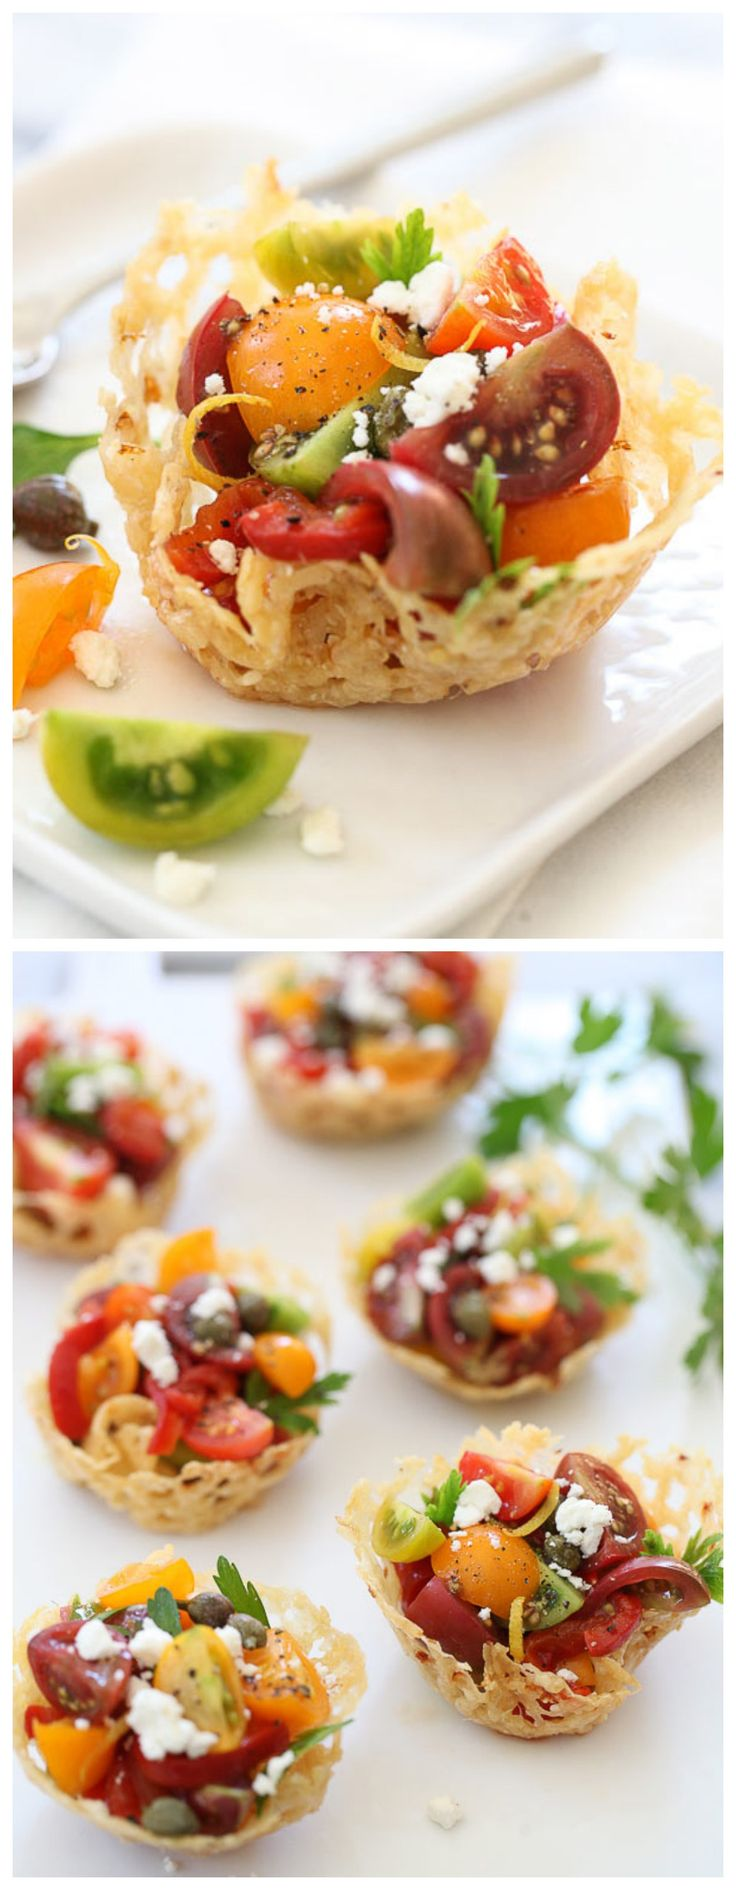 Heirloom Tomatoes in Fried Parmesan Cheese Cups - A delicious Summer appetizer!